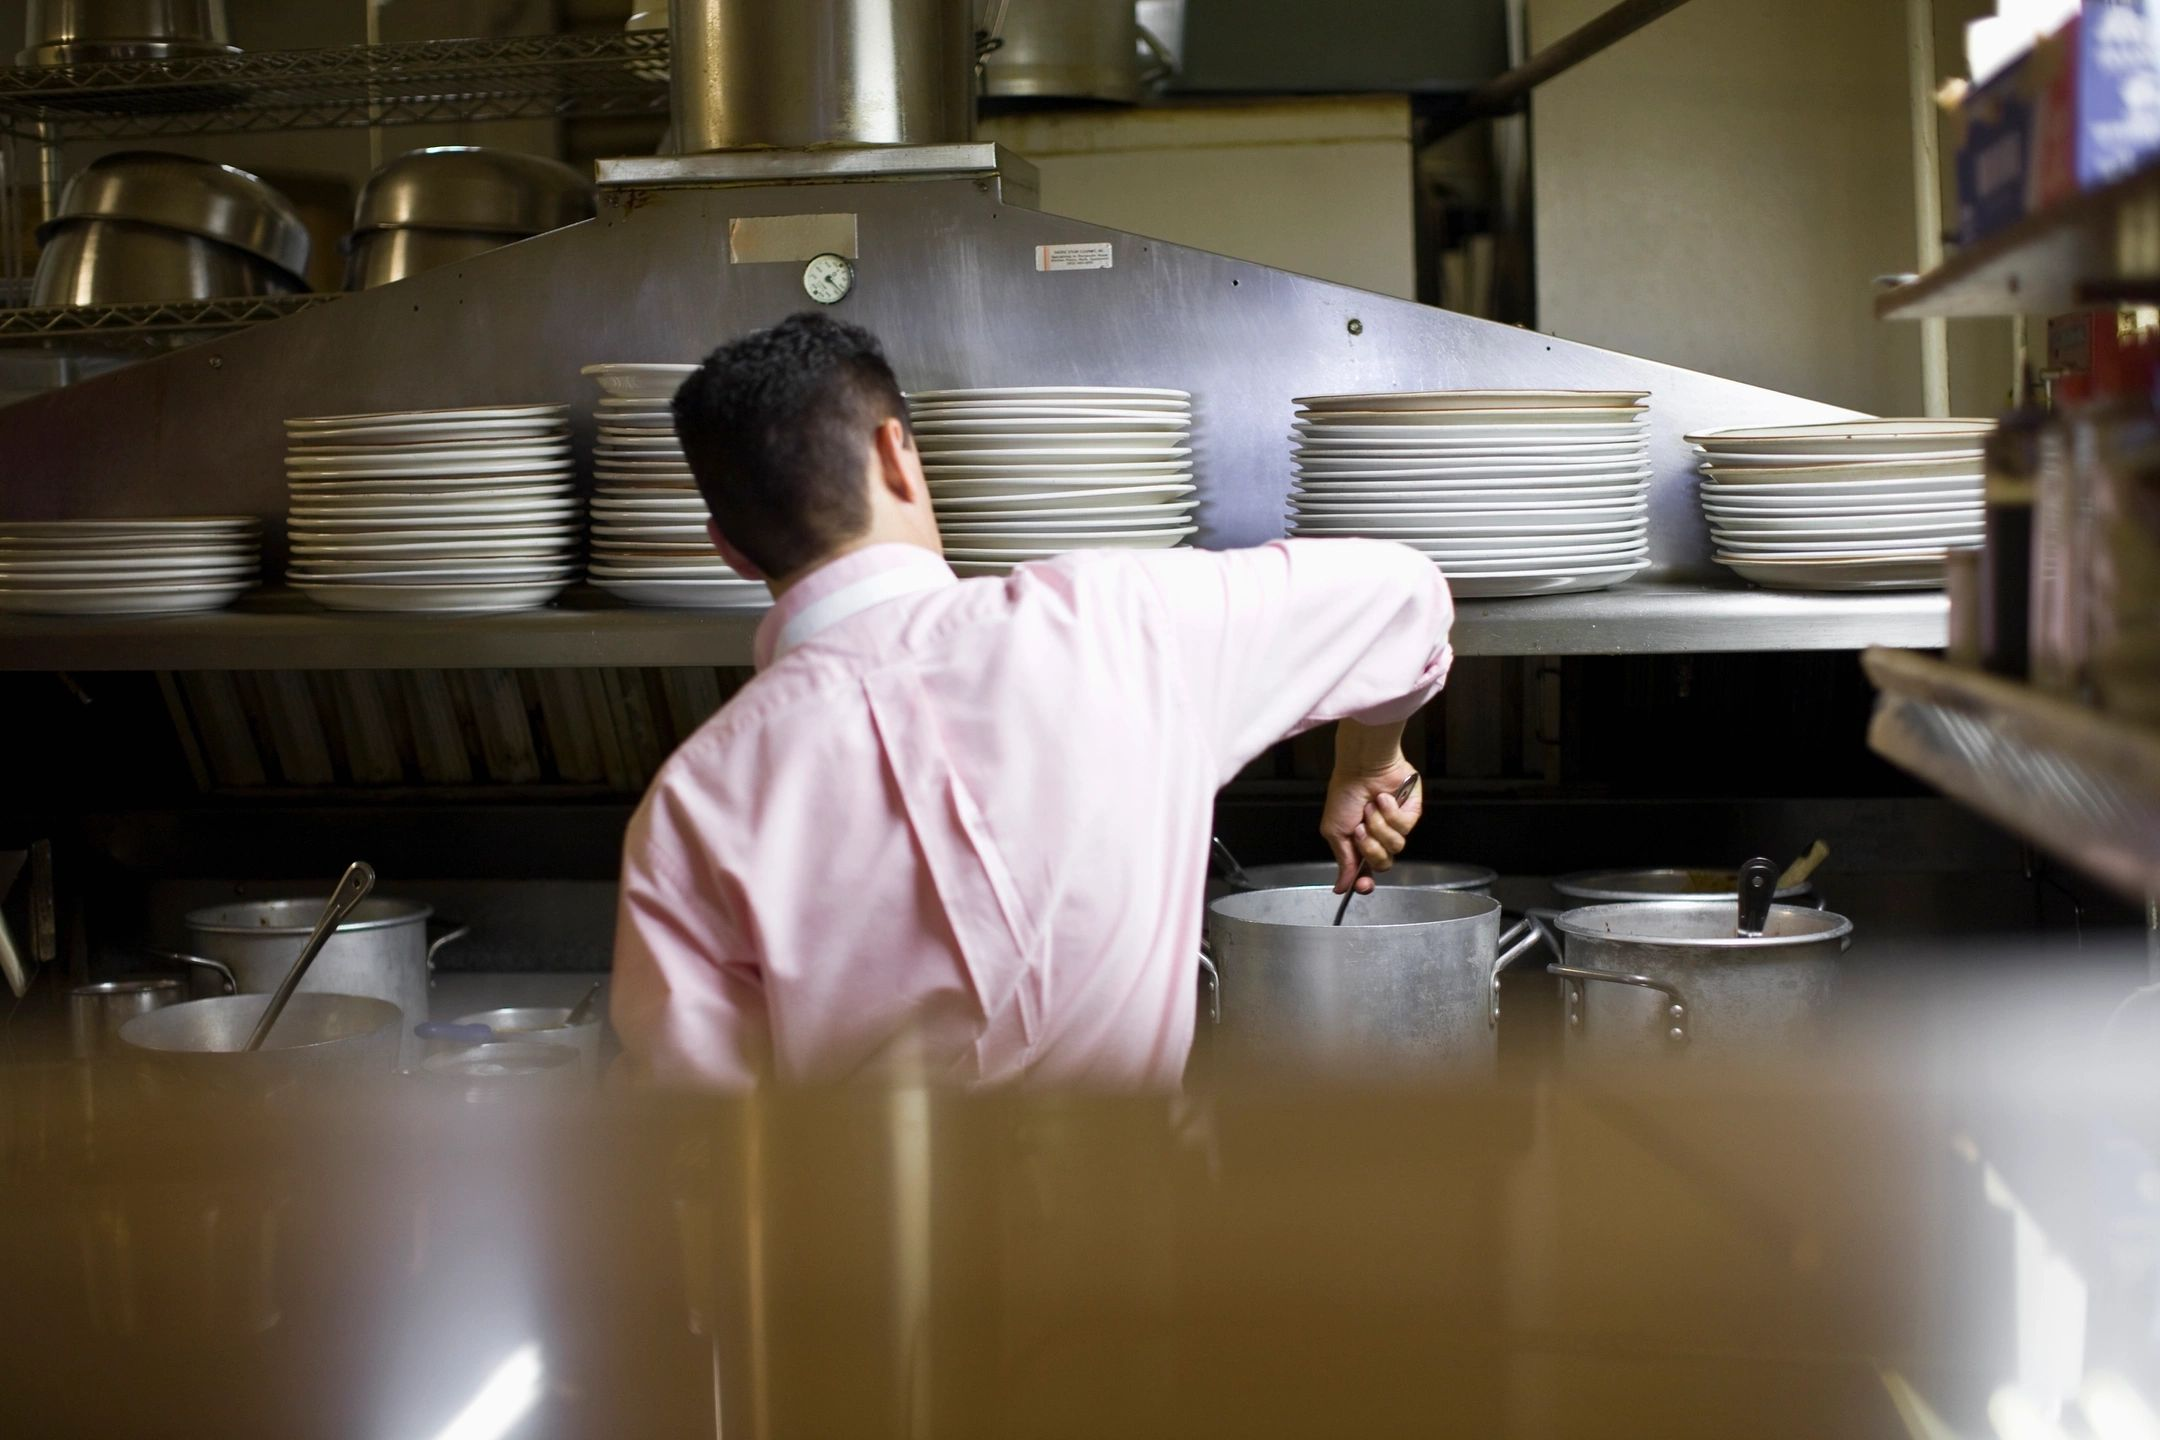 Preparing To Open A Food Business? Here Are Some Good Tips